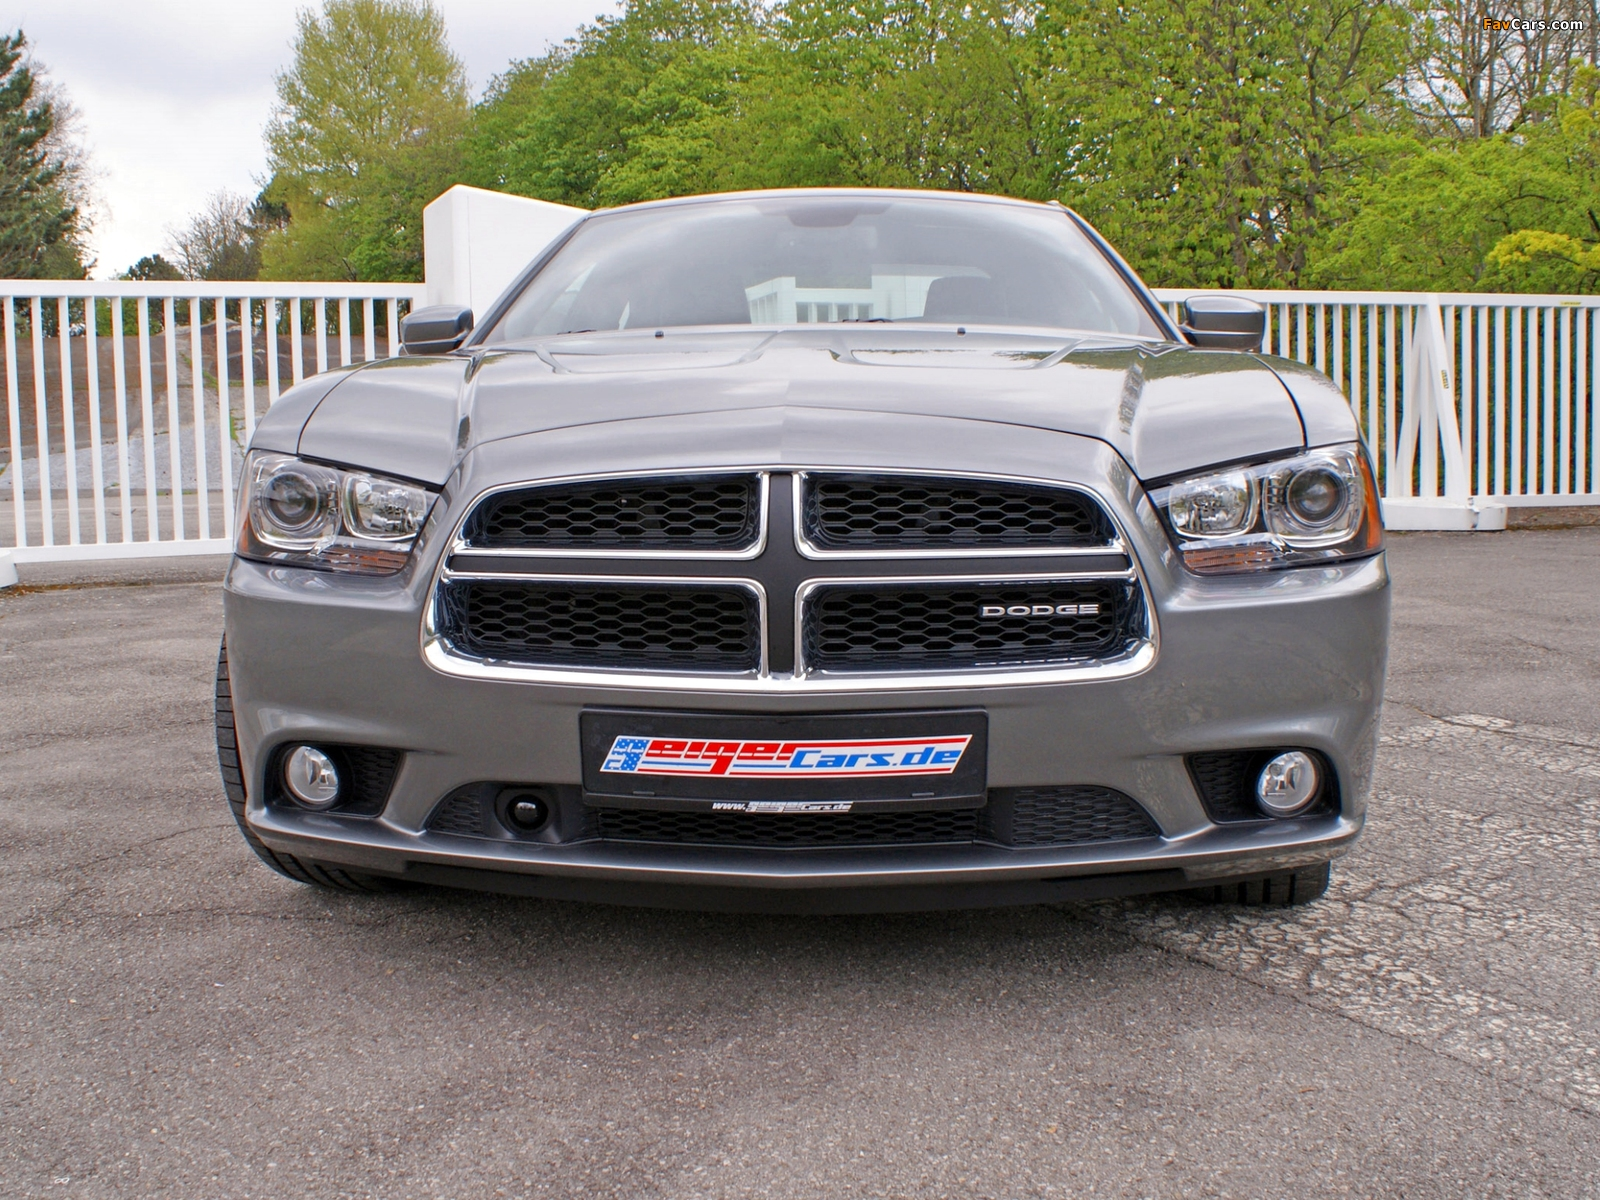 Geiger Dodge Charger R/T 2011 pictures (1600 x 1200)